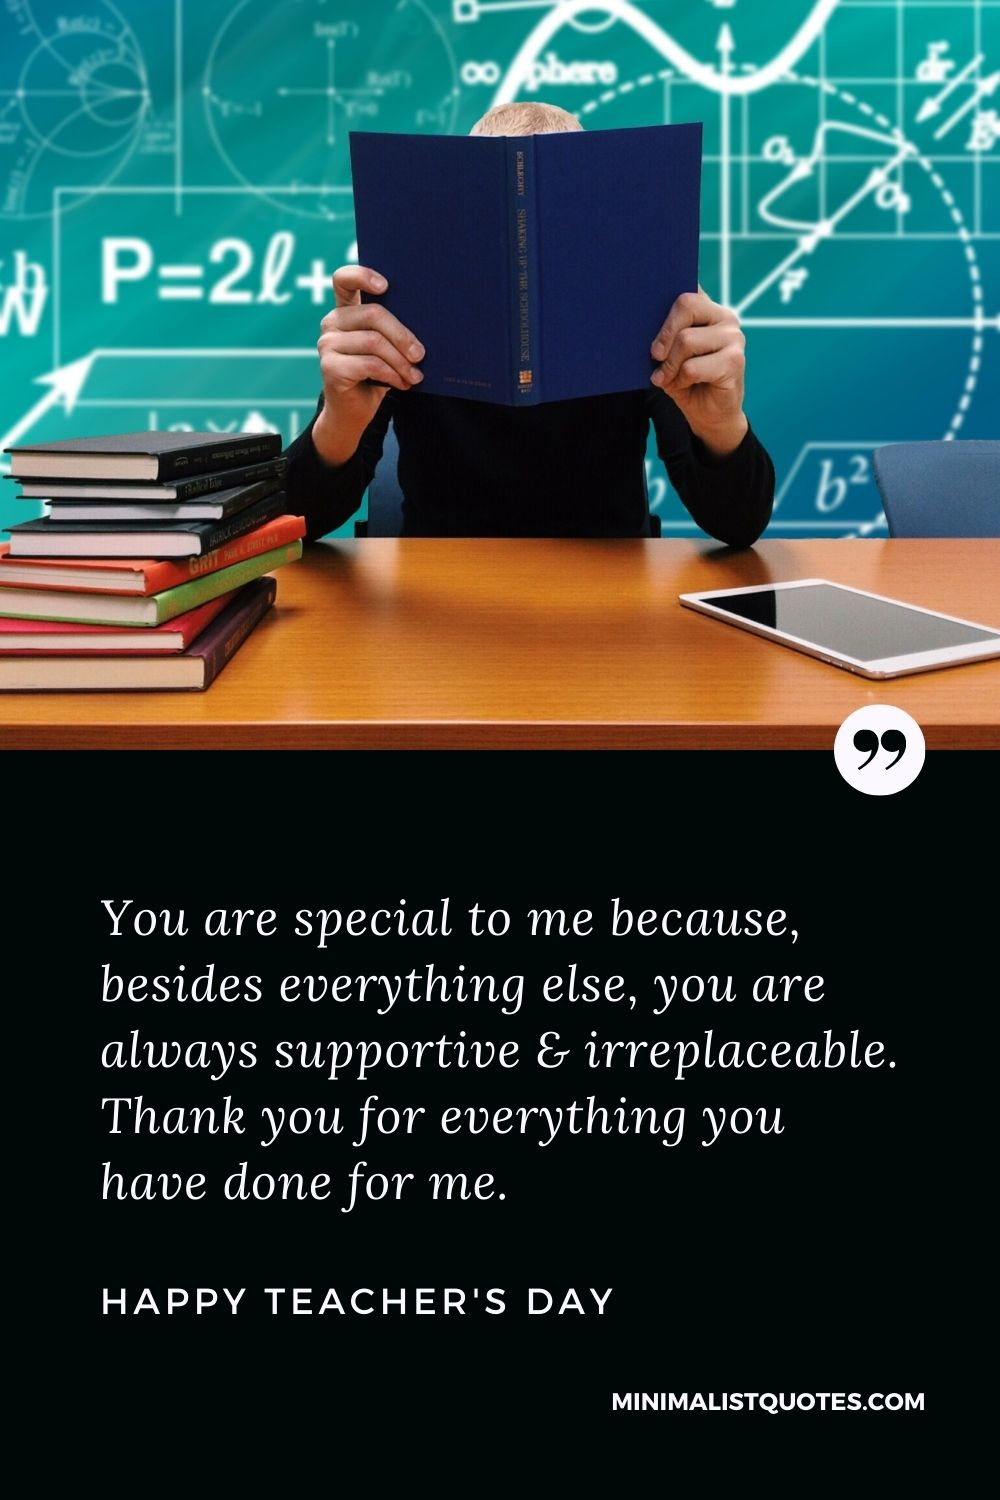 Teacher's Day Wish & Message With Image: You are special to me because, besides everything else, you are always supportive & irreplaceable. Thank you for everything you have done for me.Happy Teacher's Day!